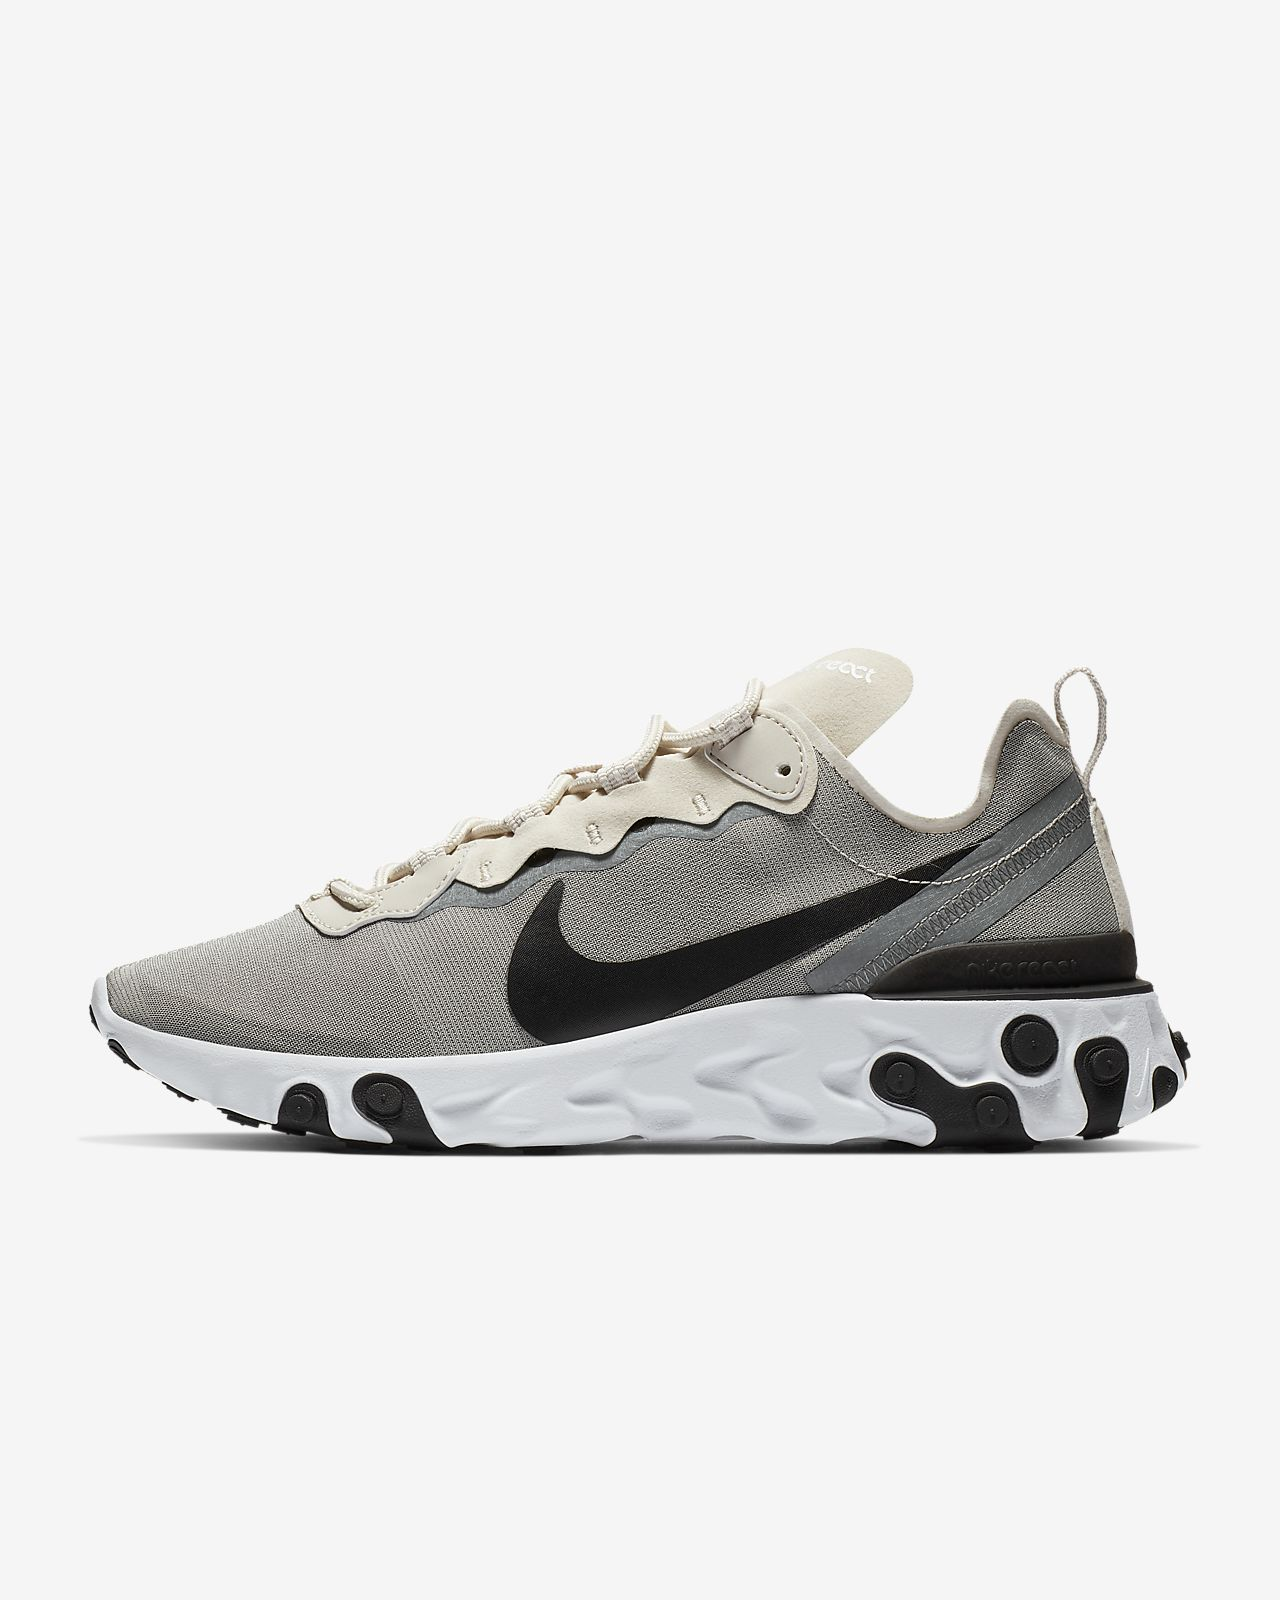 a88db7cf94 Nike React Element 55 Men's Shoe. Nike.com